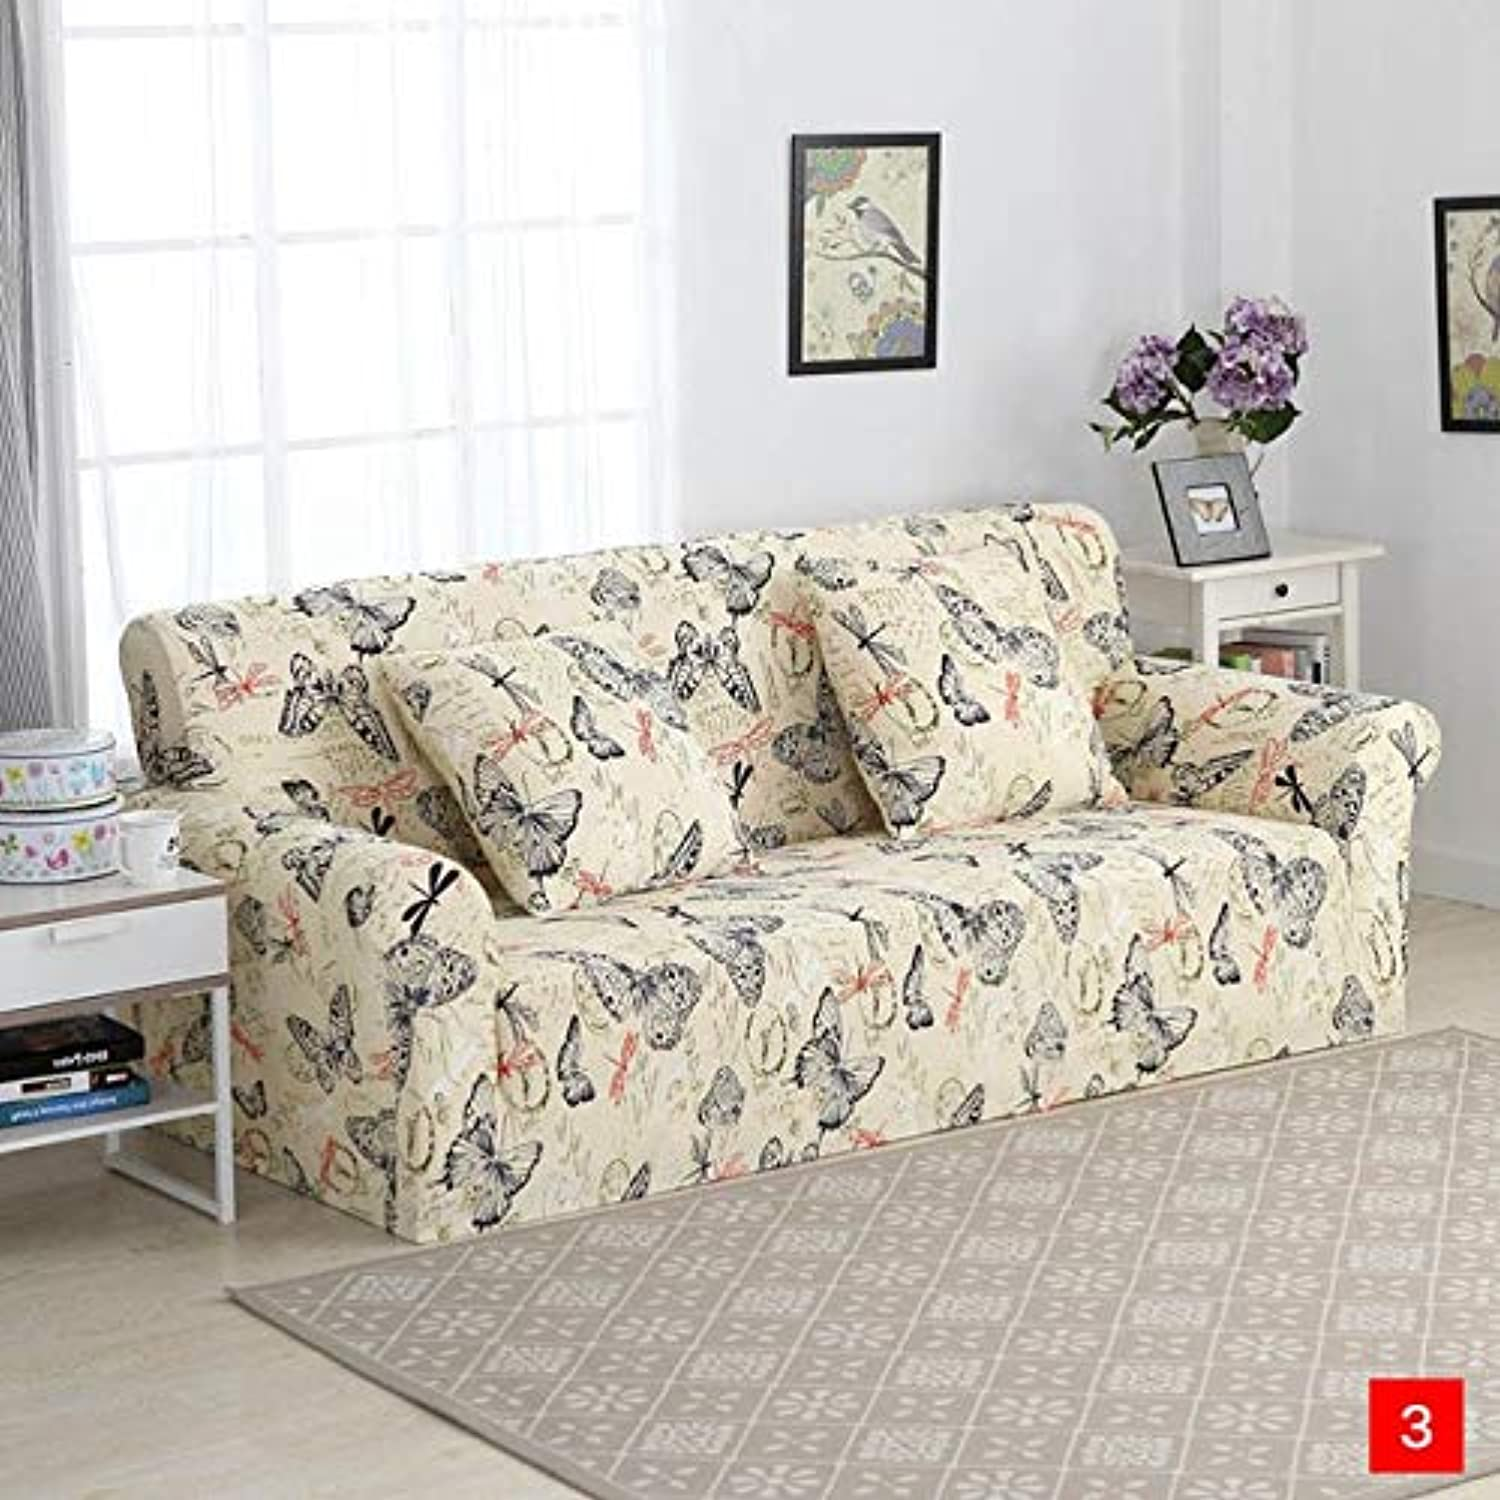 Elastic Sofa Covers for Living Room Tights Blanket for Couch ...